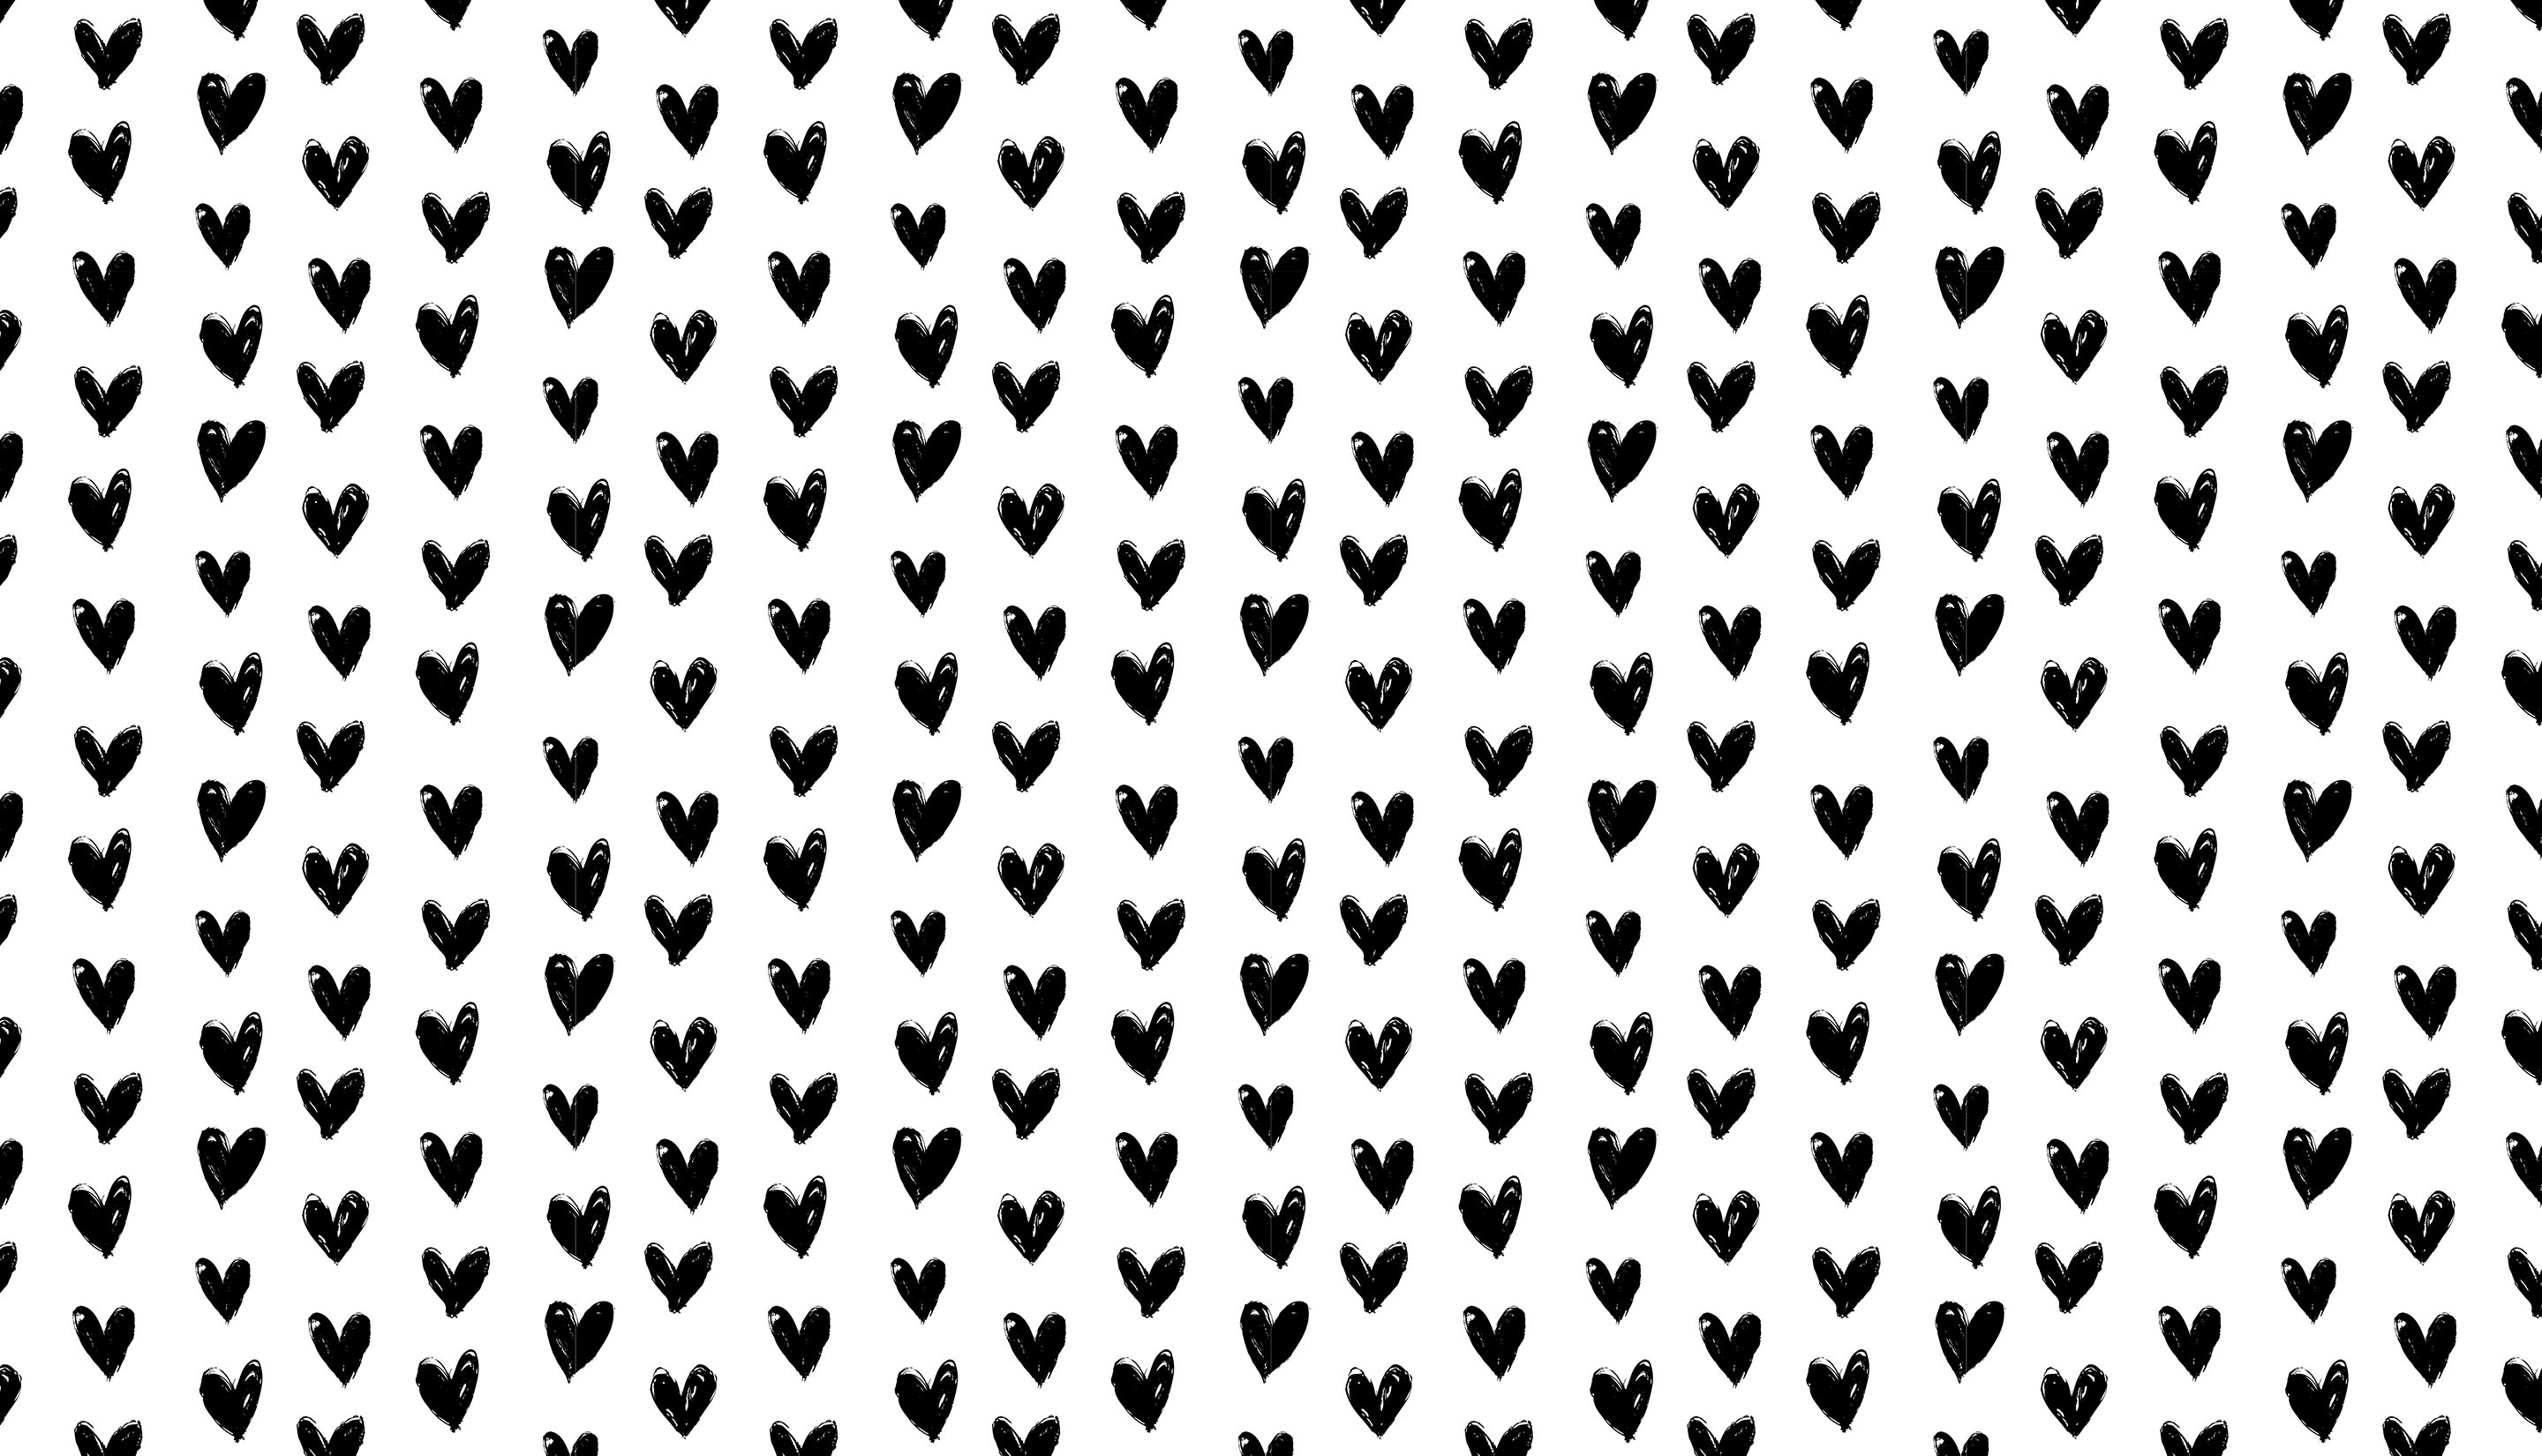 Marydesktop 01 Png 2880 1650 Black And White Heart White Pattern Background Free Wallpaper Backgrounds